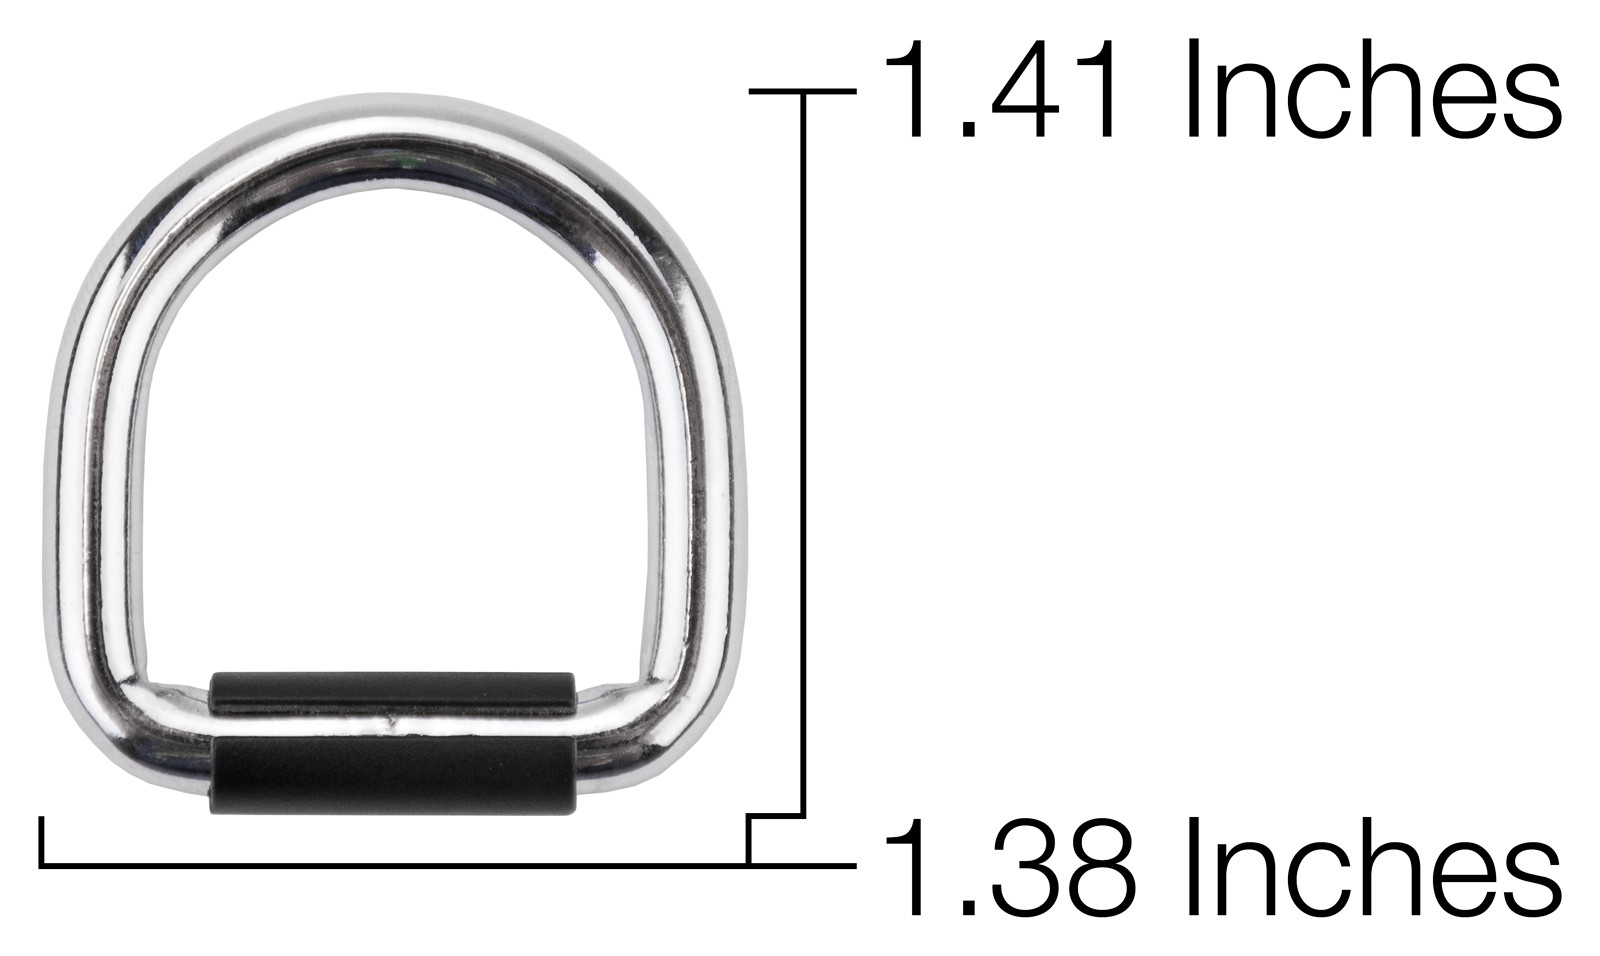 Buy 1 Inch Heavy Welded D Ring With Plastic Clasp Closeout